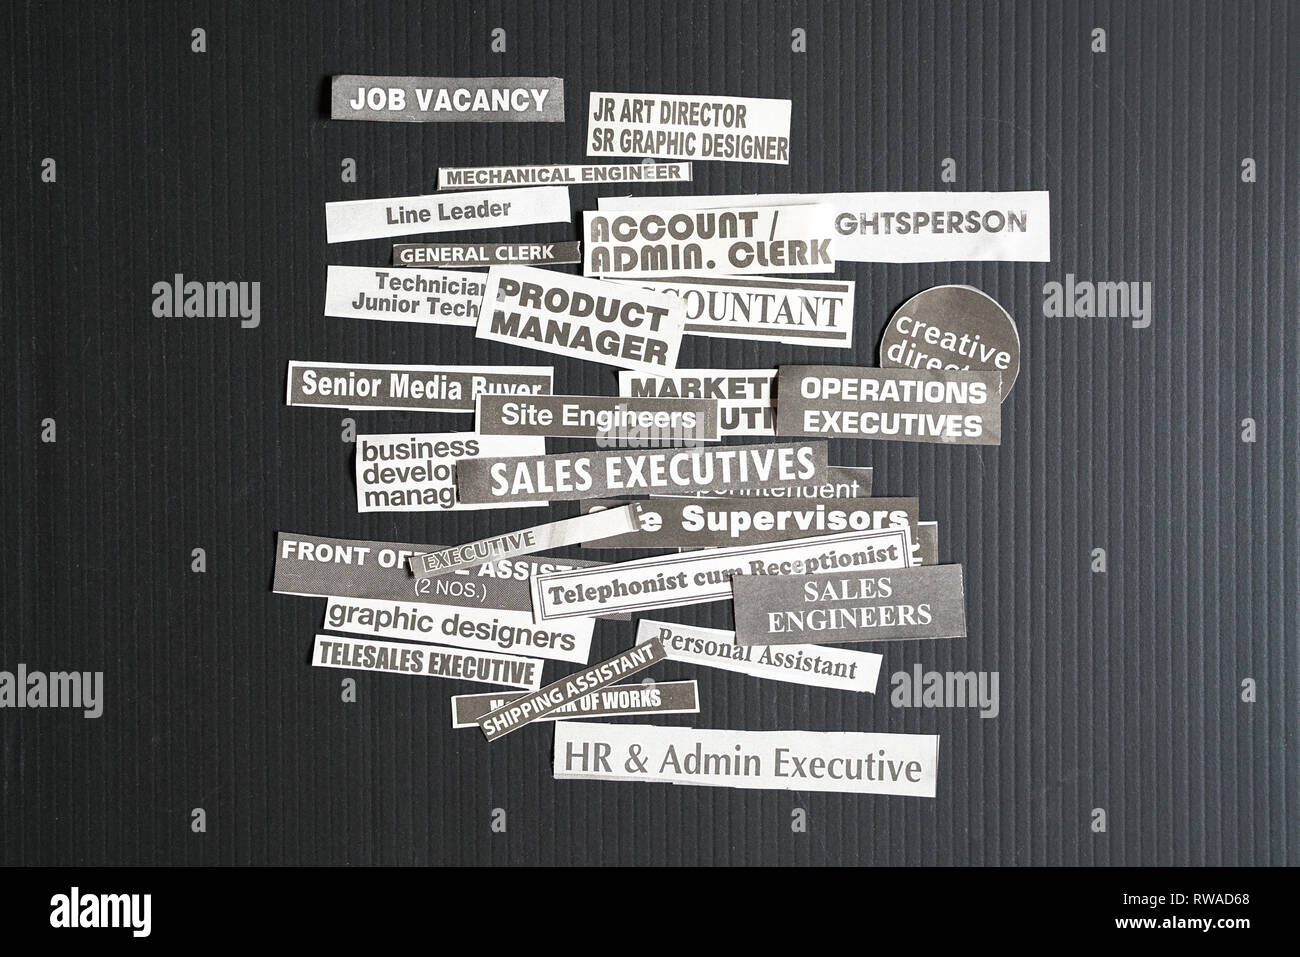 Jobs or careers concept: multiple job titles or occupations cut off from newspaper on black background - Stock Image